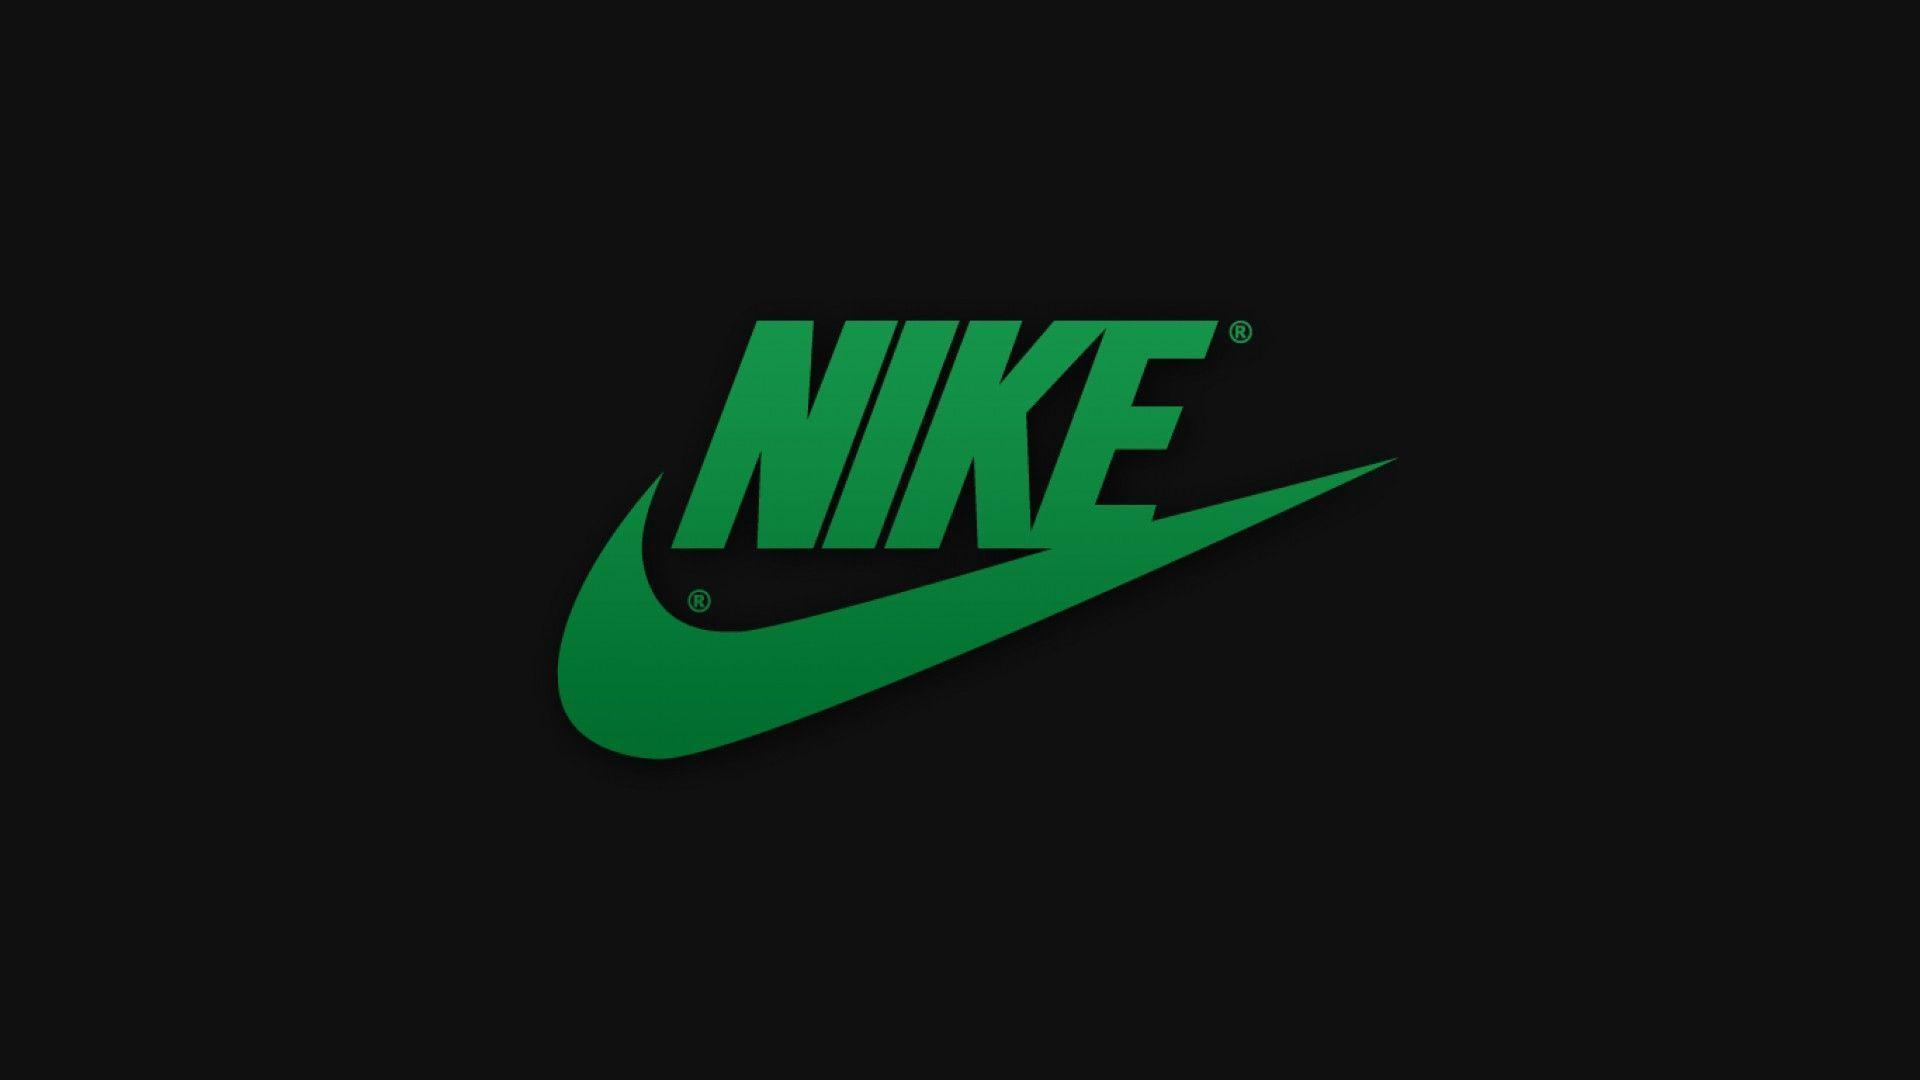 nike logo pictures wallpapers wallpaper cave rh wallpapercave com Just Do It Nike Logo cool nike logo images